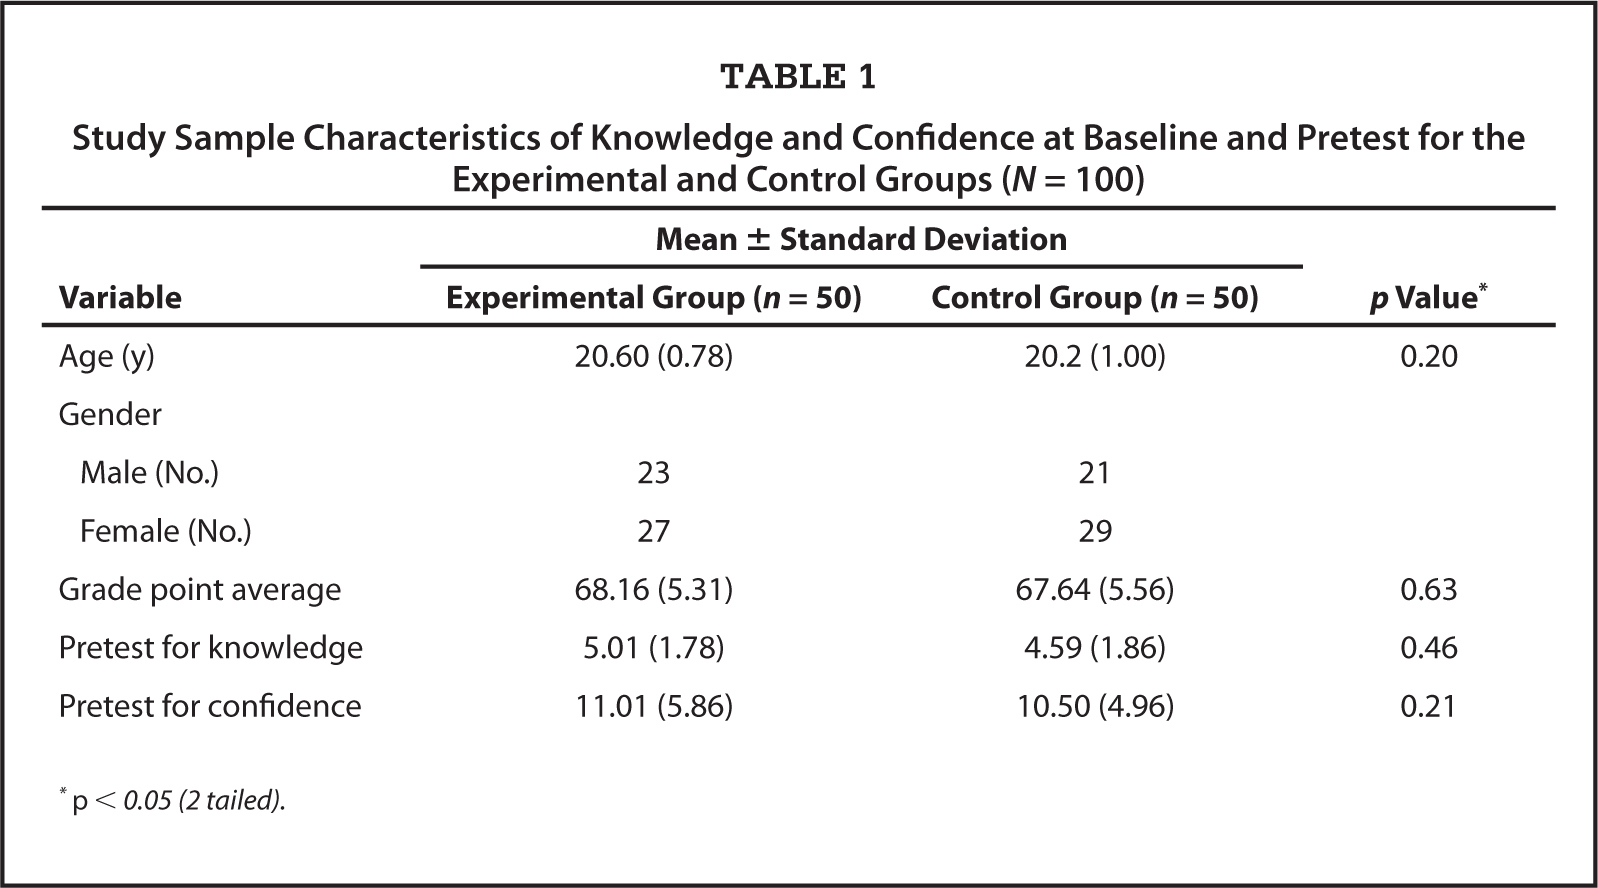 Study Sample Characteristics of Knowledge and Confidence at Baseline and Pretest for the Experimental and Control Groups (N = 100)